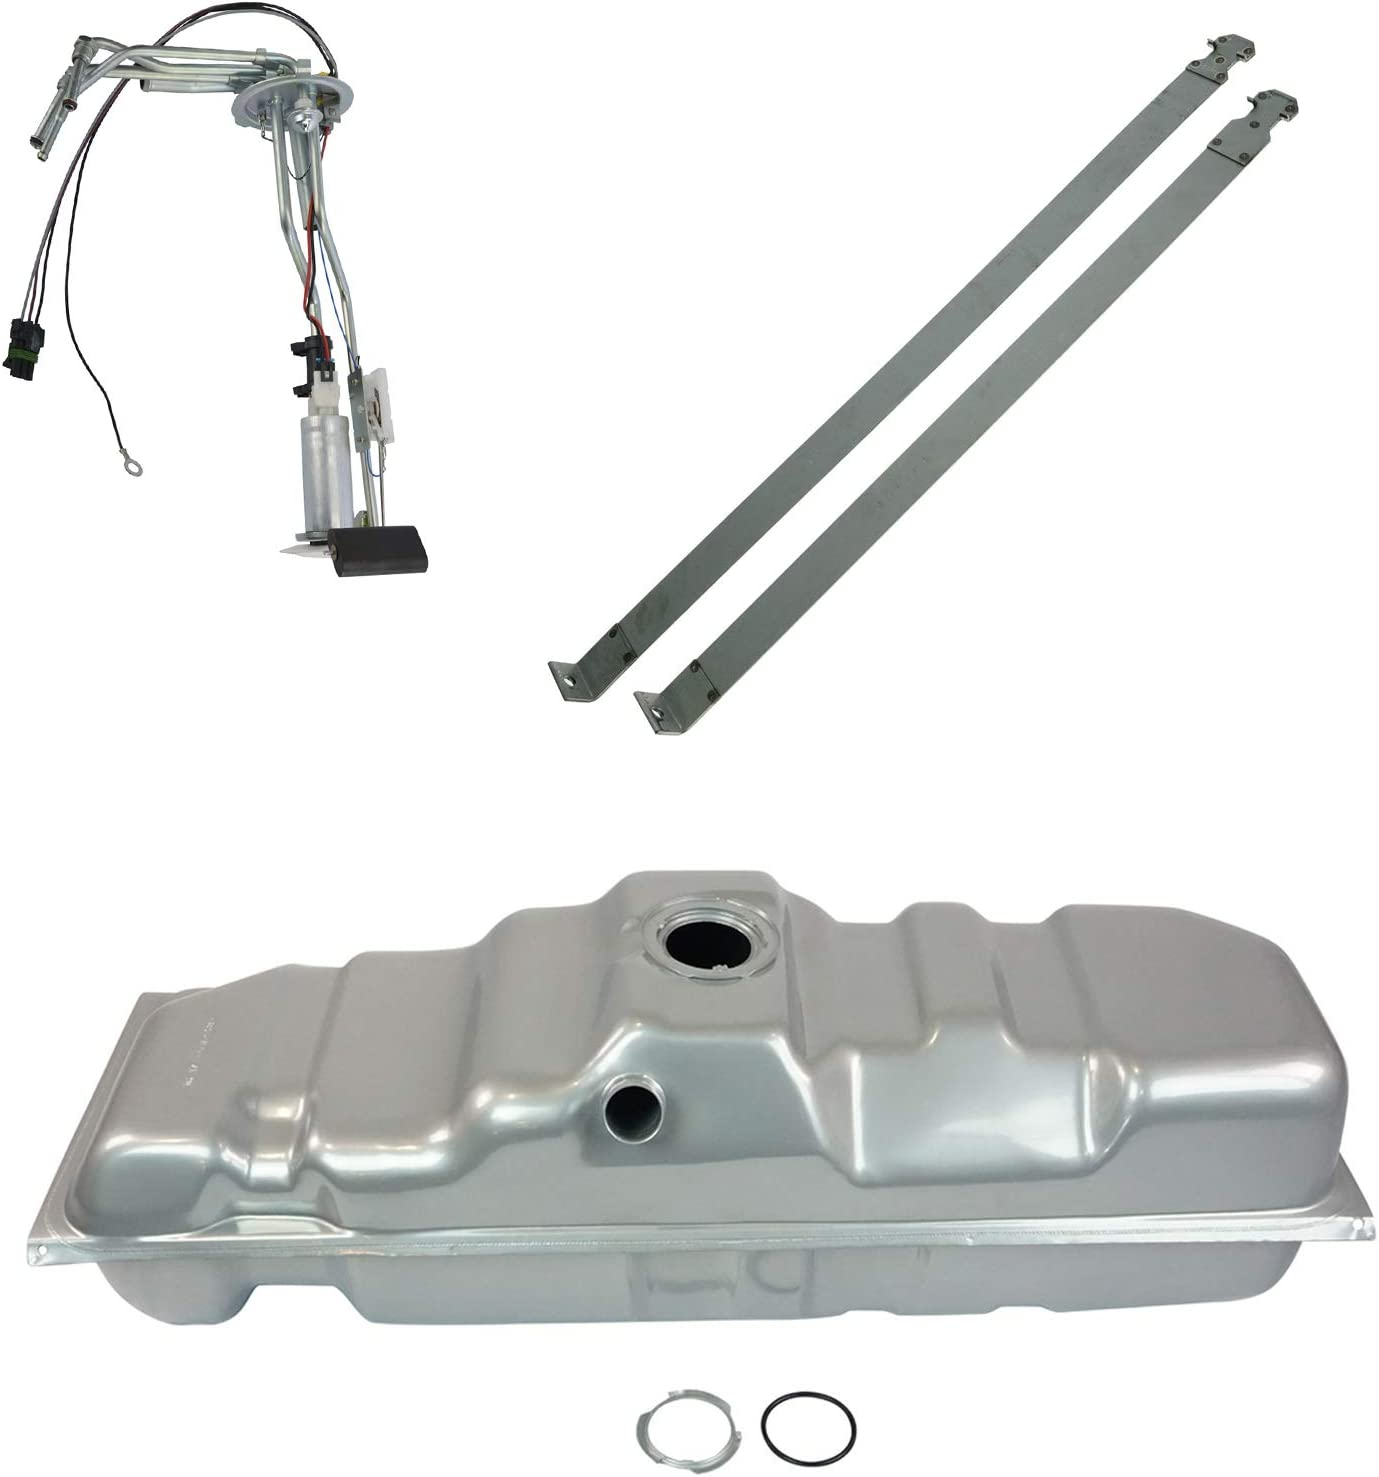 Fuel Tank with Opening large release sale Straps Electric Pump overseas Unit G Kit 25 Sending